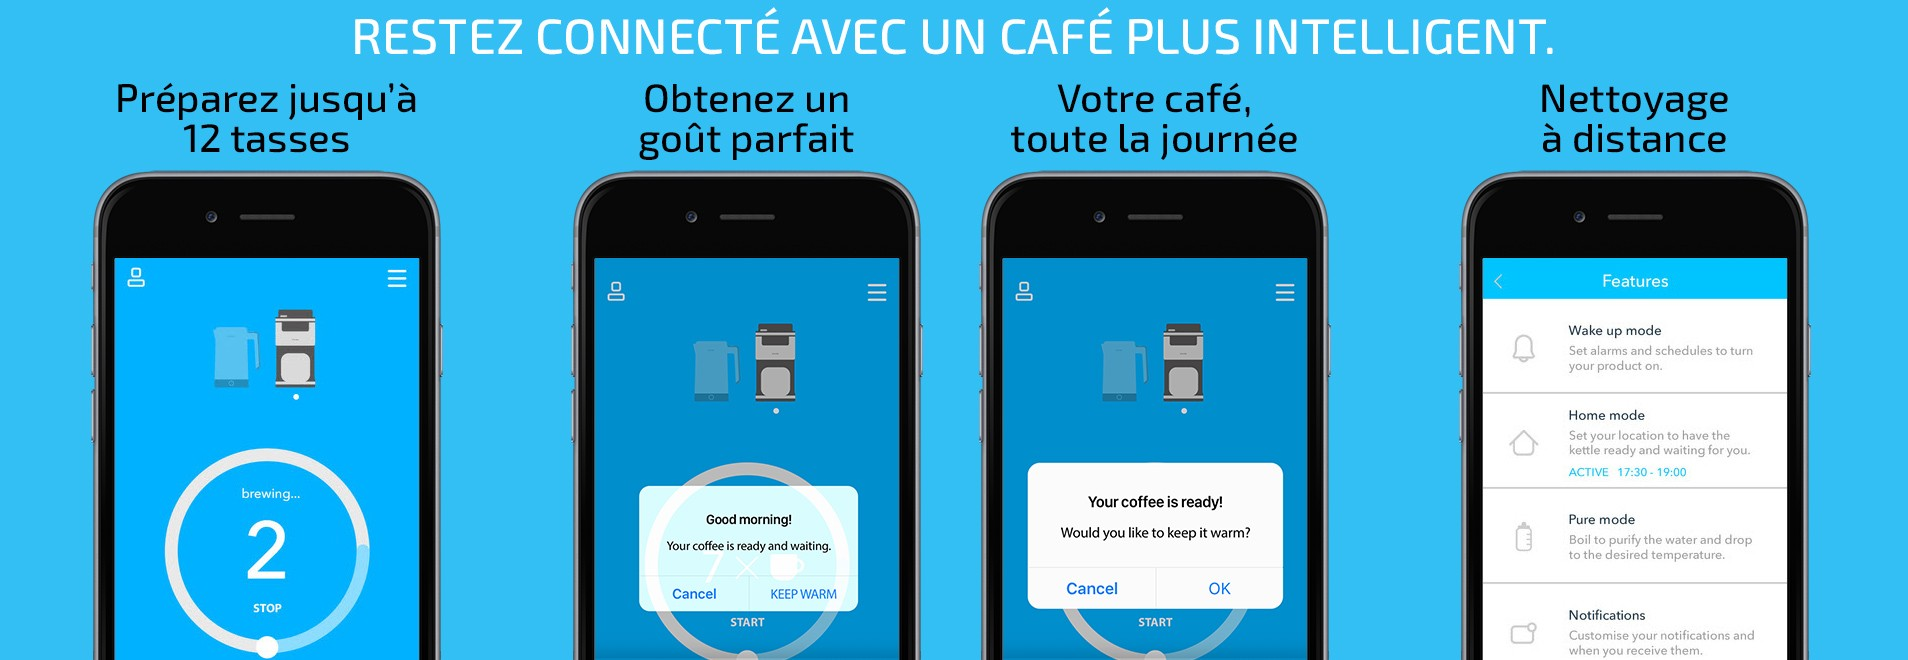 Machine à café connectée Smarter Coffee application mobile